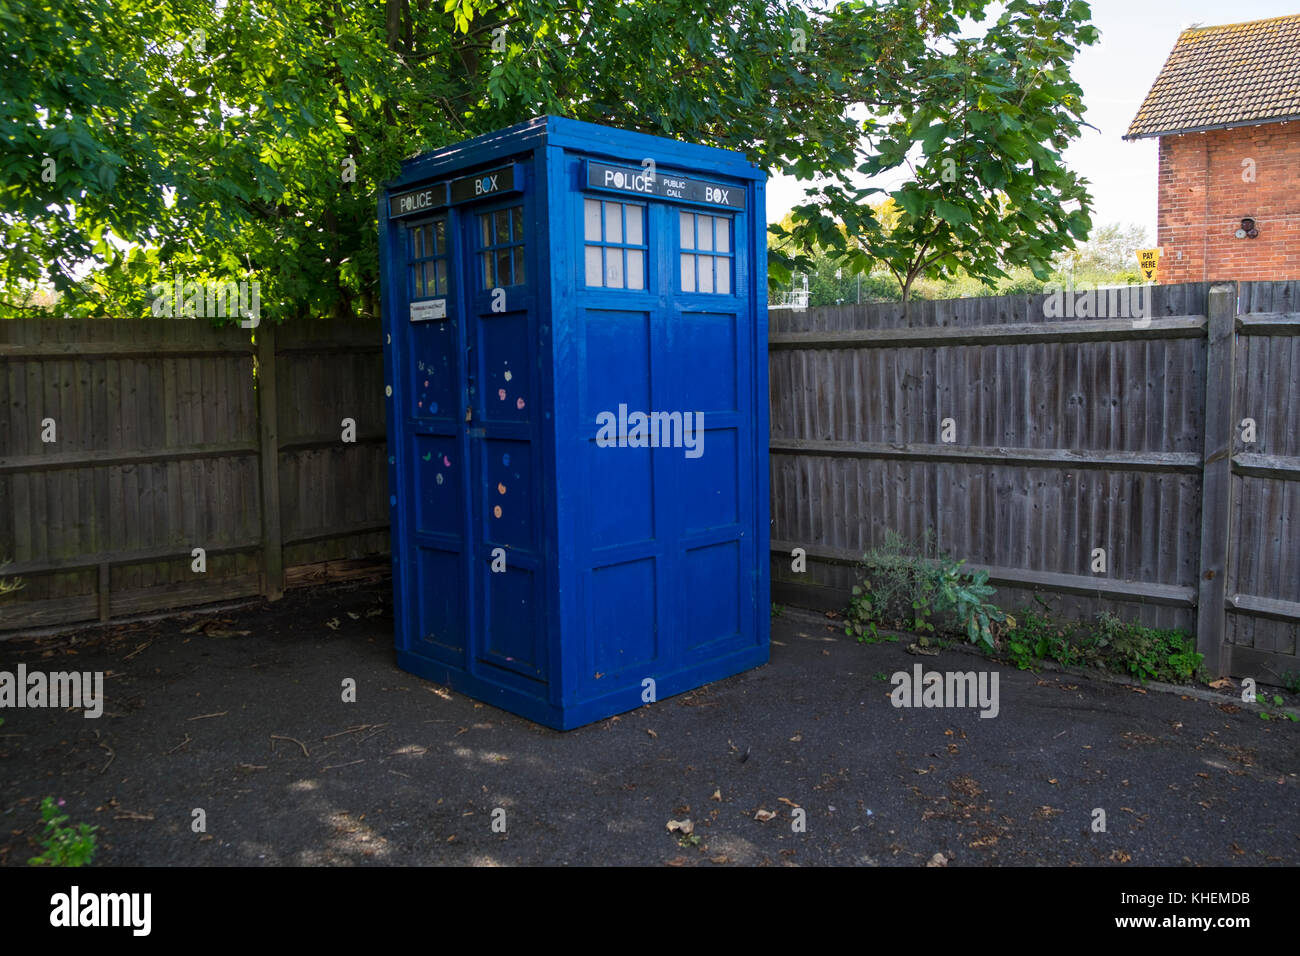 A blue police box, callbox, telephone kiosk. Rye, East Sussex - Stock Image